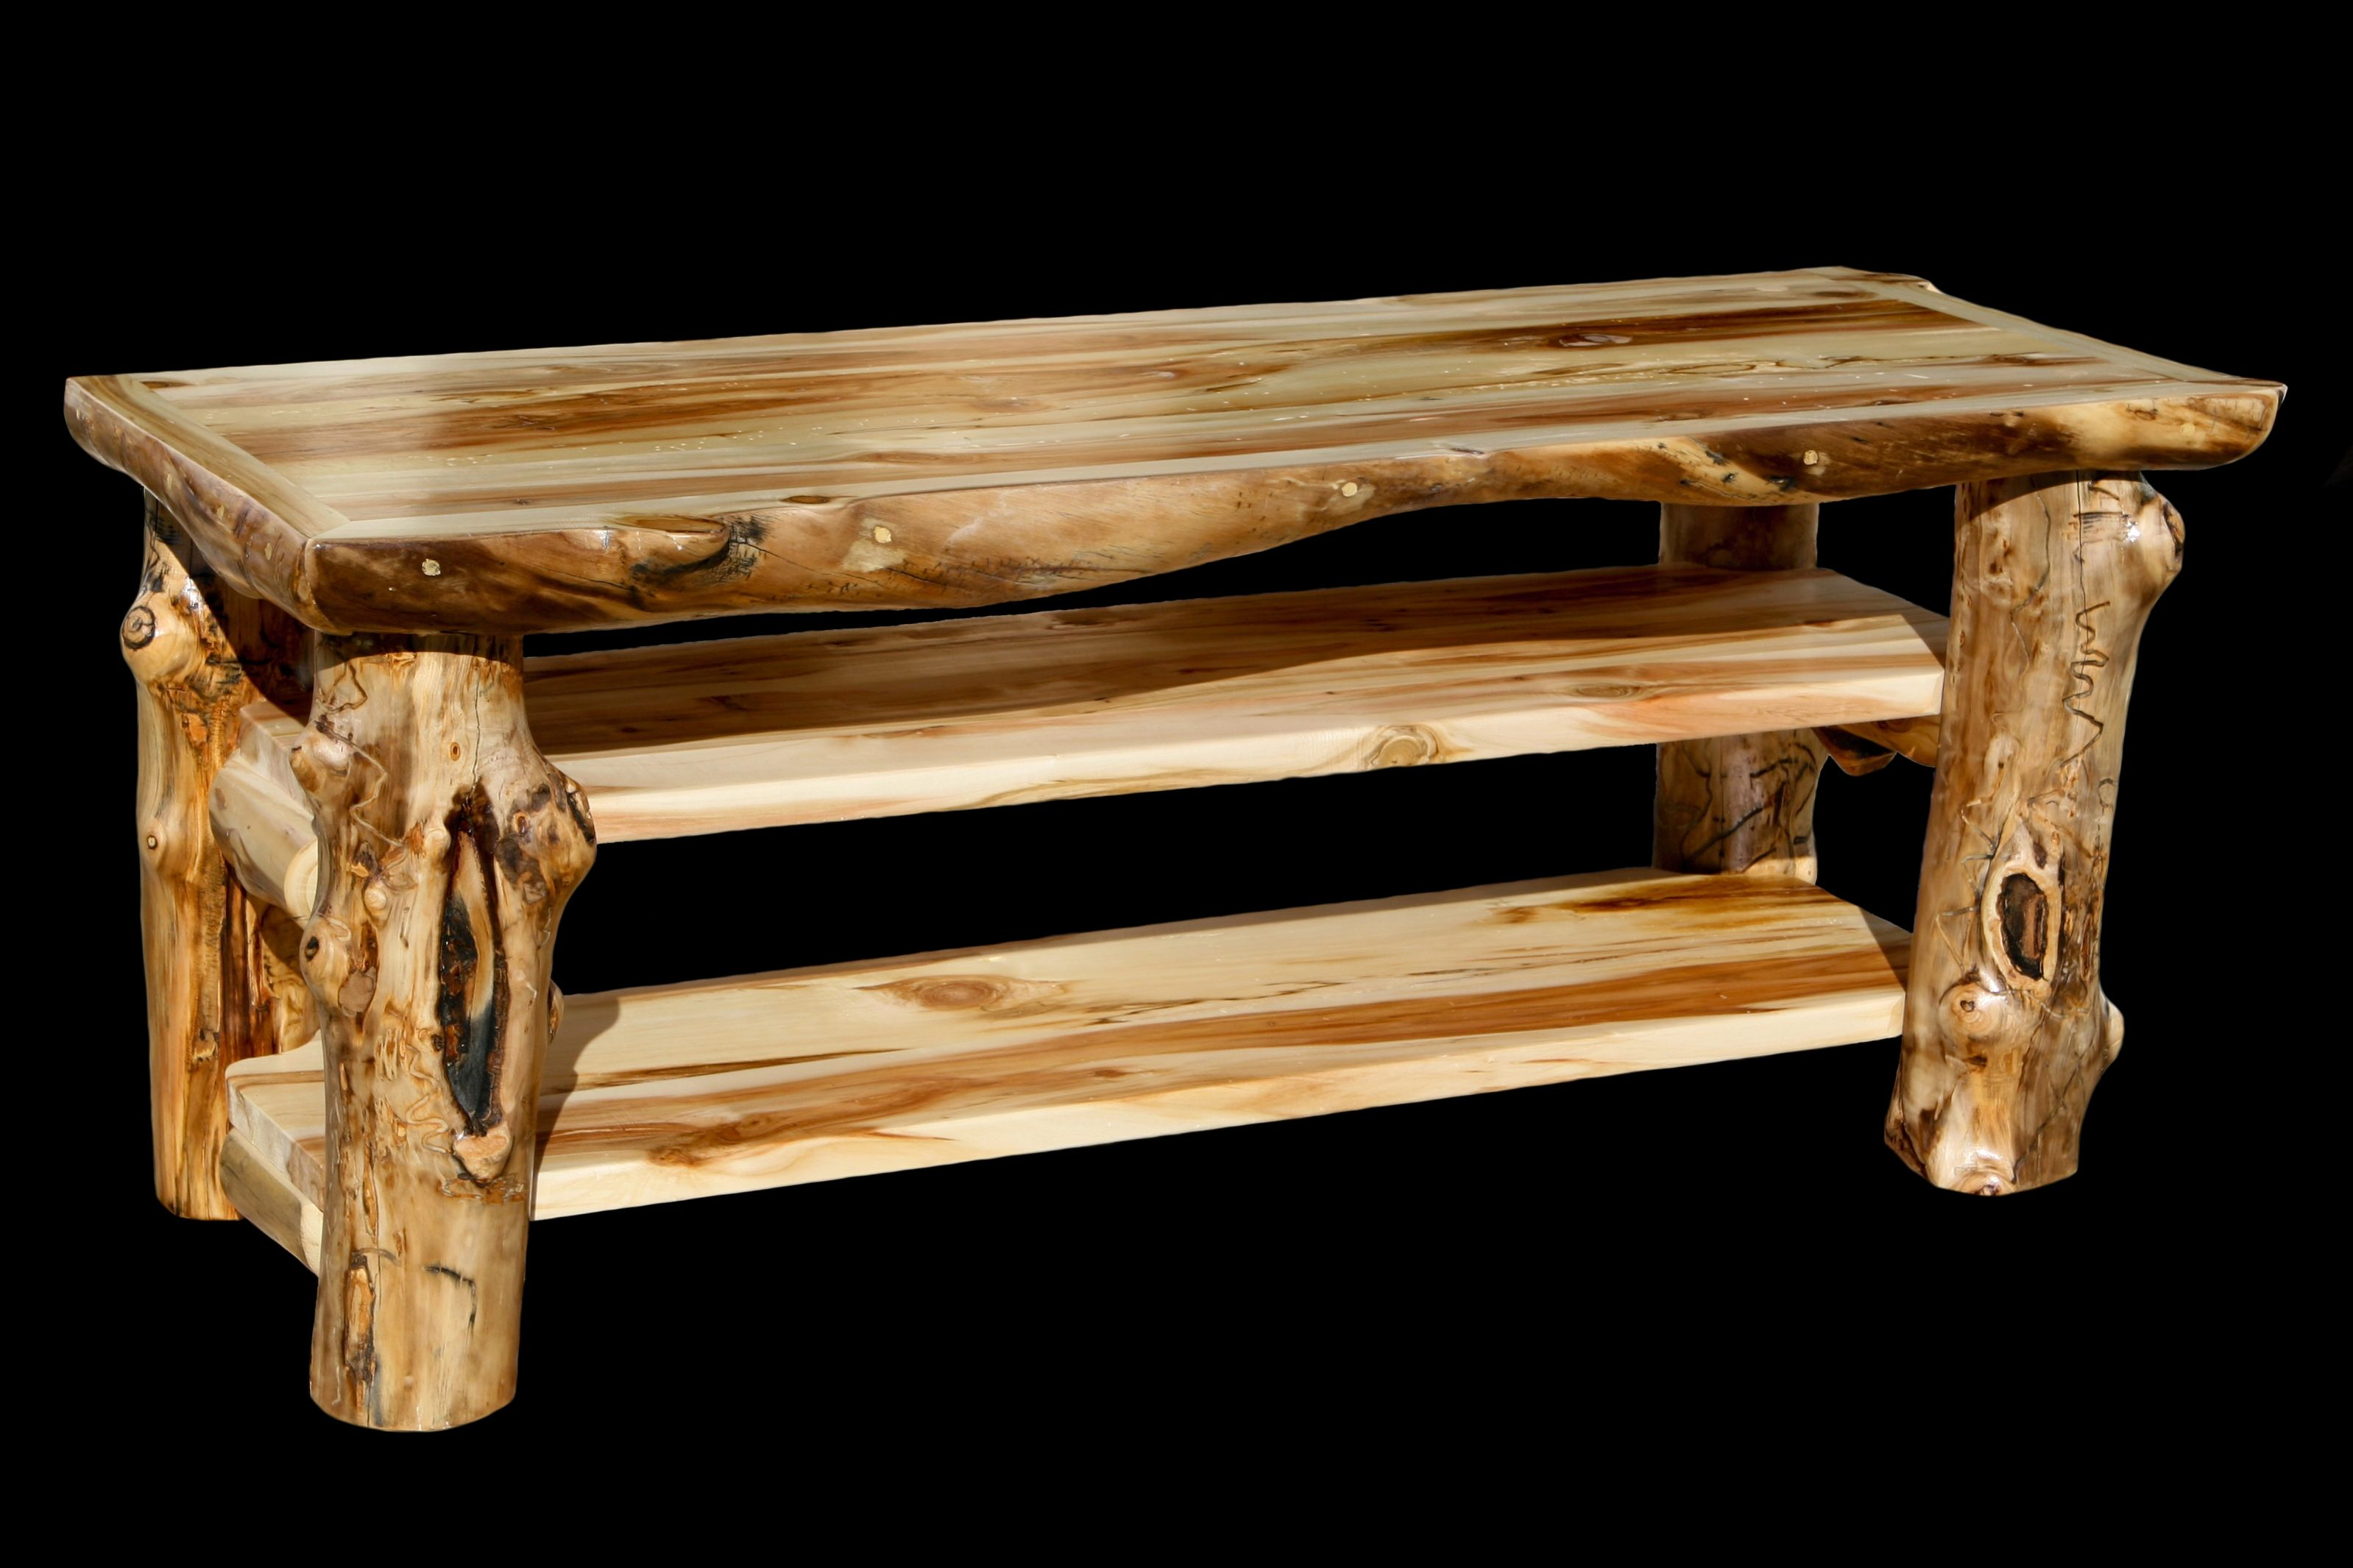 Superb Log Furniture Tv Stand #1 - We Offer This Grizzly Aspen Log TV Stand And Other Fine Rustic Aspen  Furniture. Browse Our Rustic Furniture Catalogs Now.